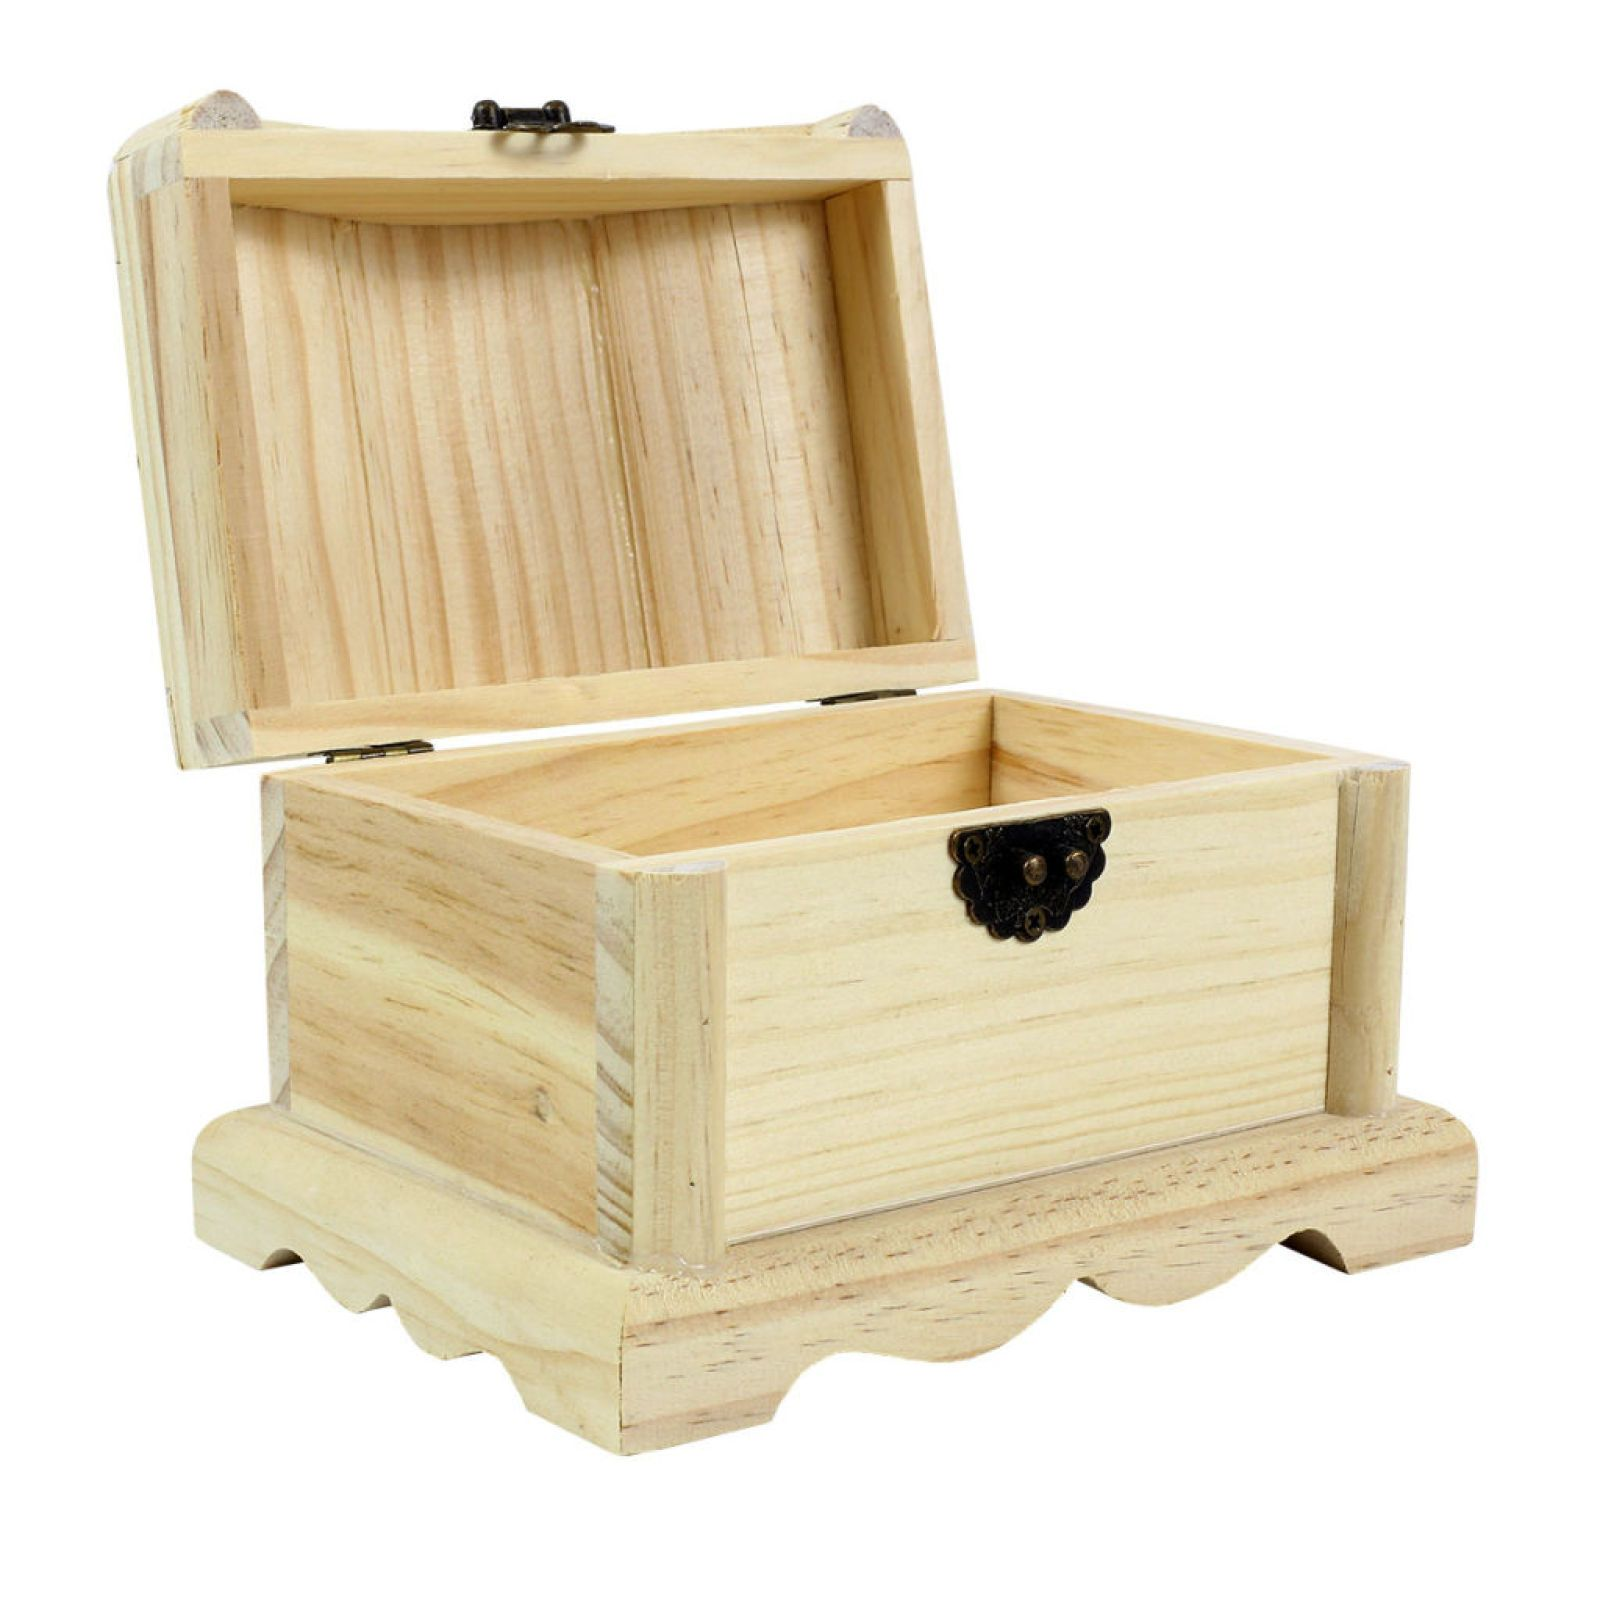 Wood Treasure Chest By Artminds With Images Wood Crafts Wood Treasure Chest